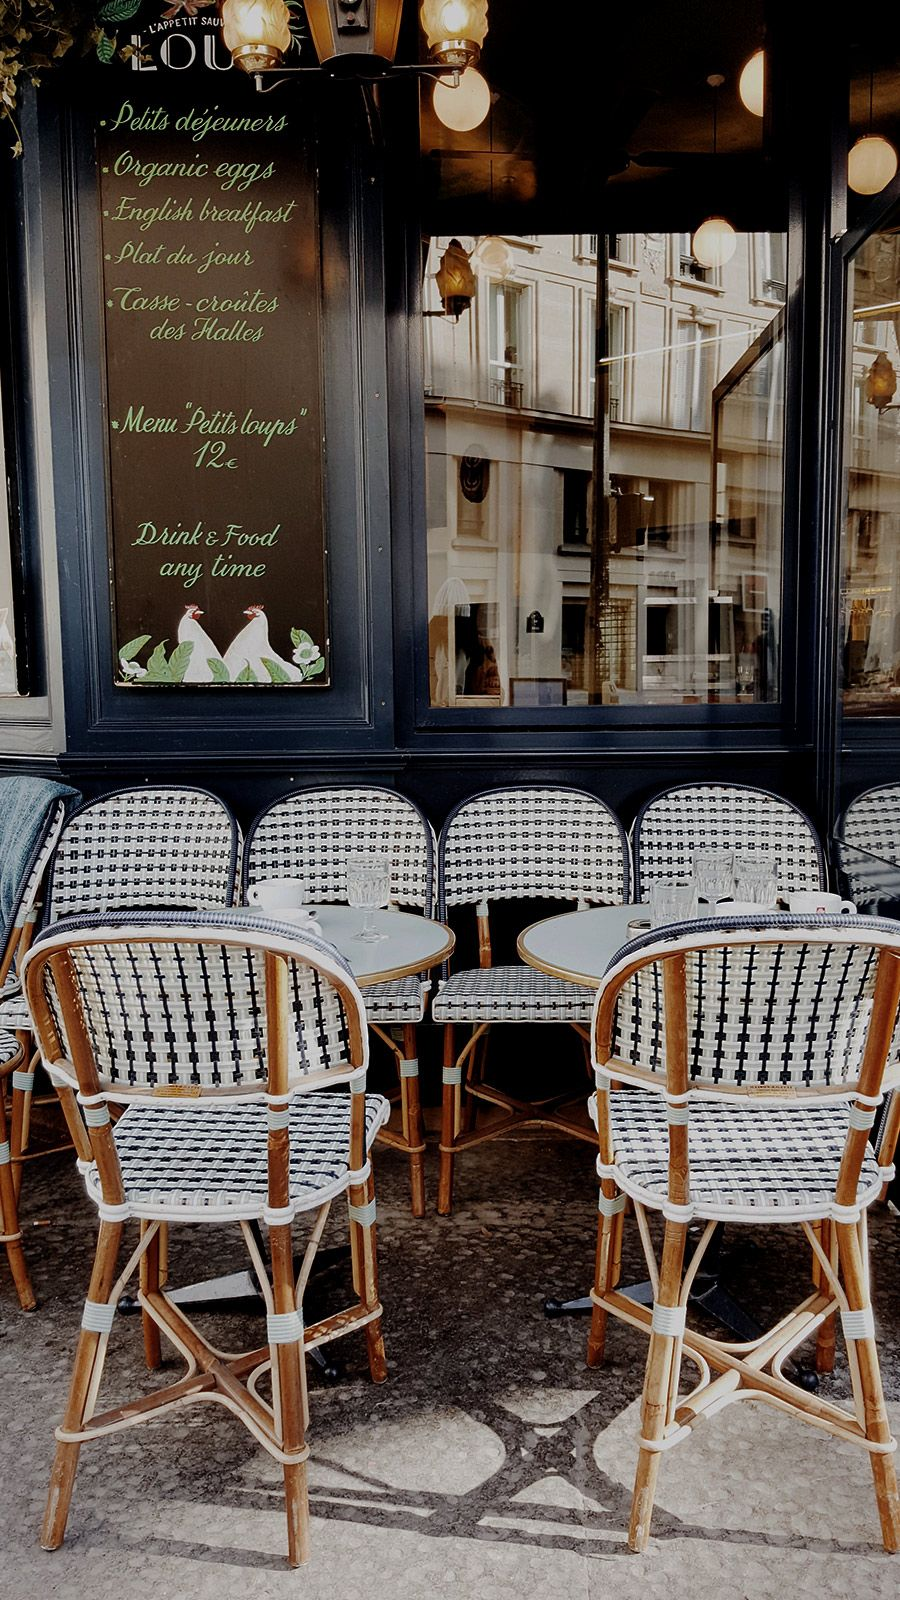 10 Places to Eat in Paris